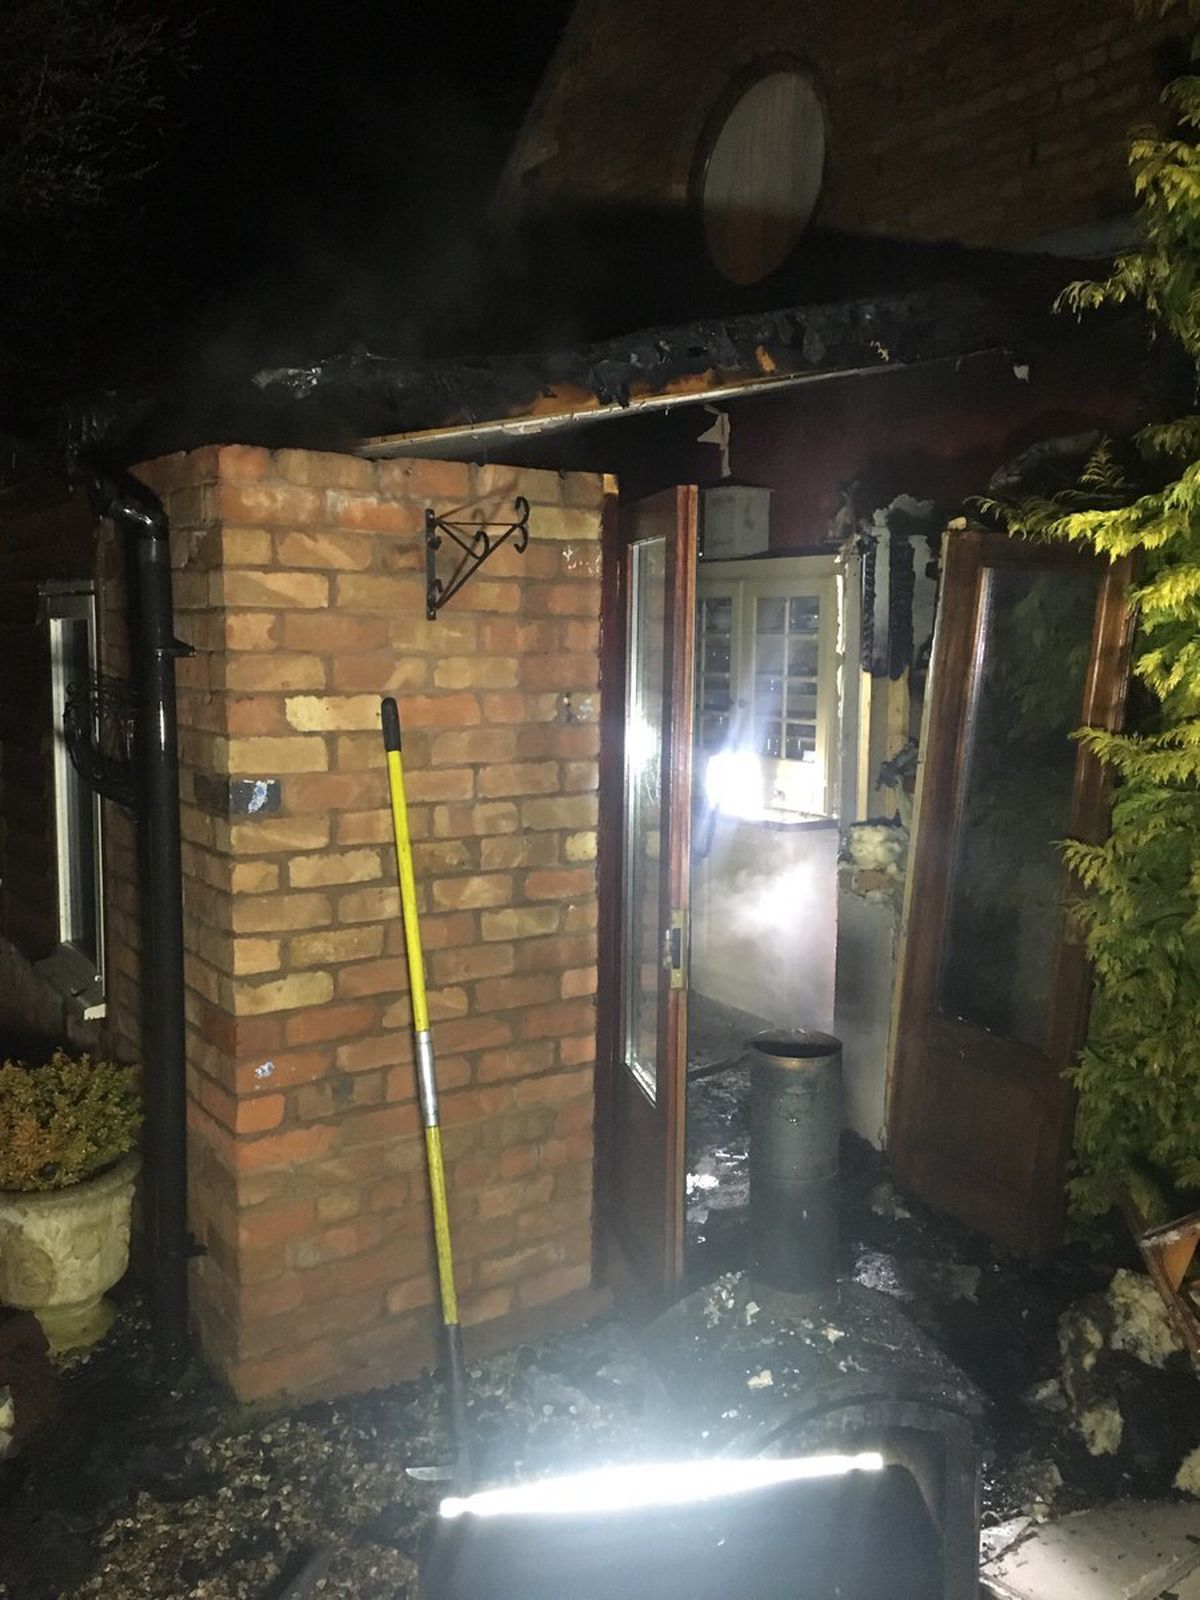 The aftermath of the house fire near Stafford. Photo: @StaffsFire